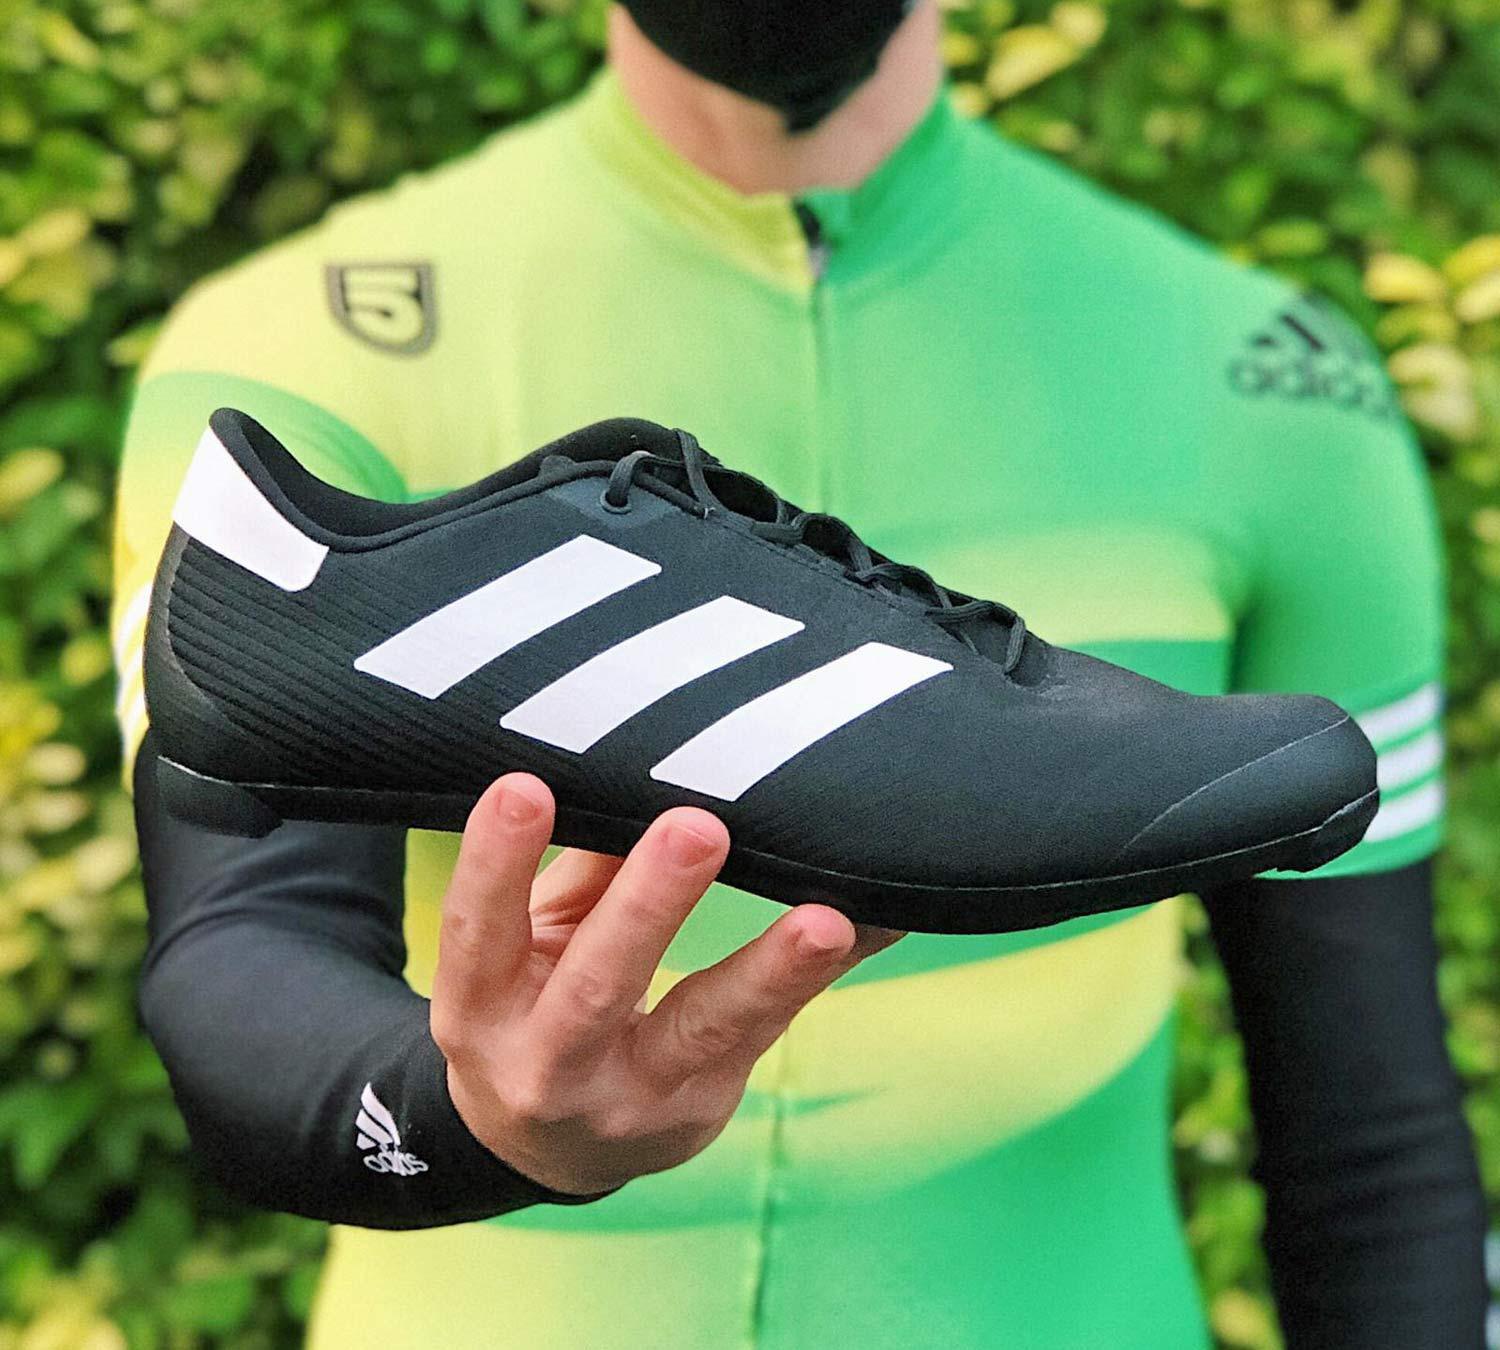 The Road Cycling Shoes by adidas mix classic soccer style & laces ...